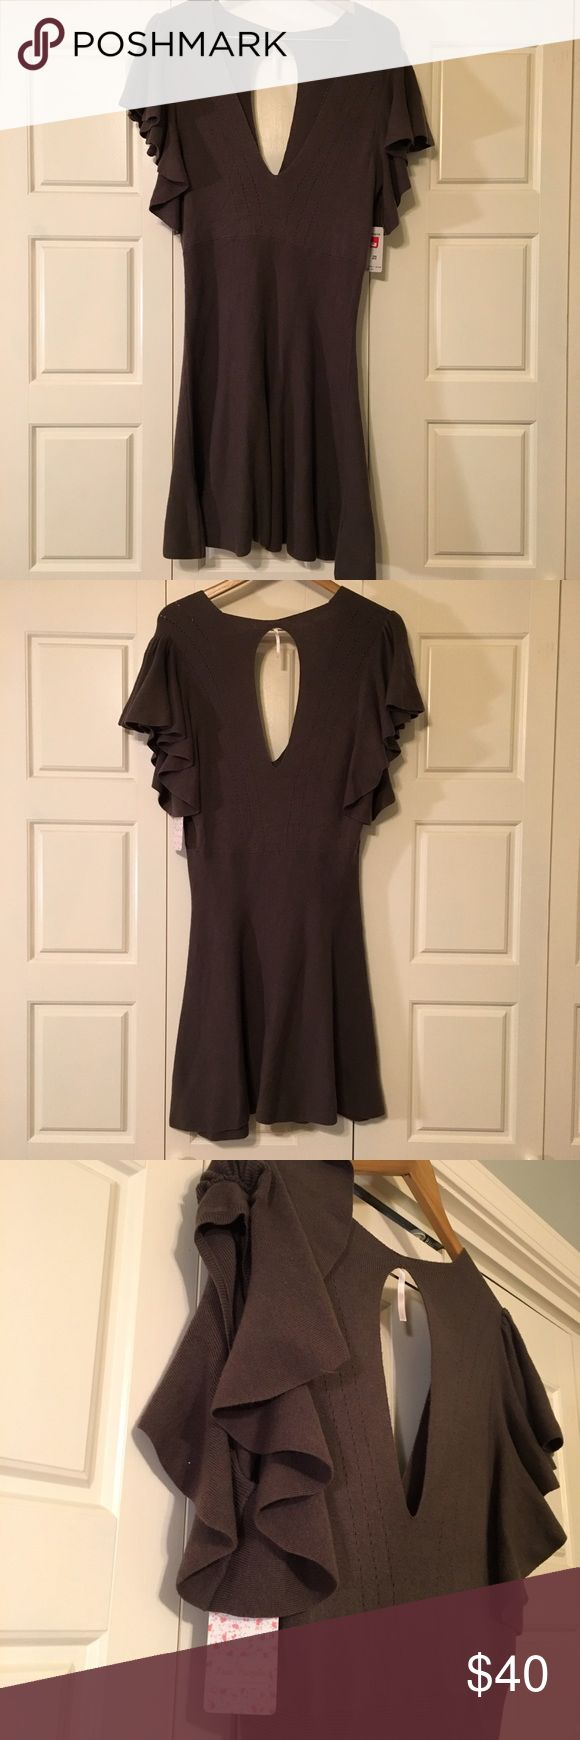 Taupe sweater dress Super soft and versatile neutral mini dress. Lots of stretch. Brand new. Free People Dresses